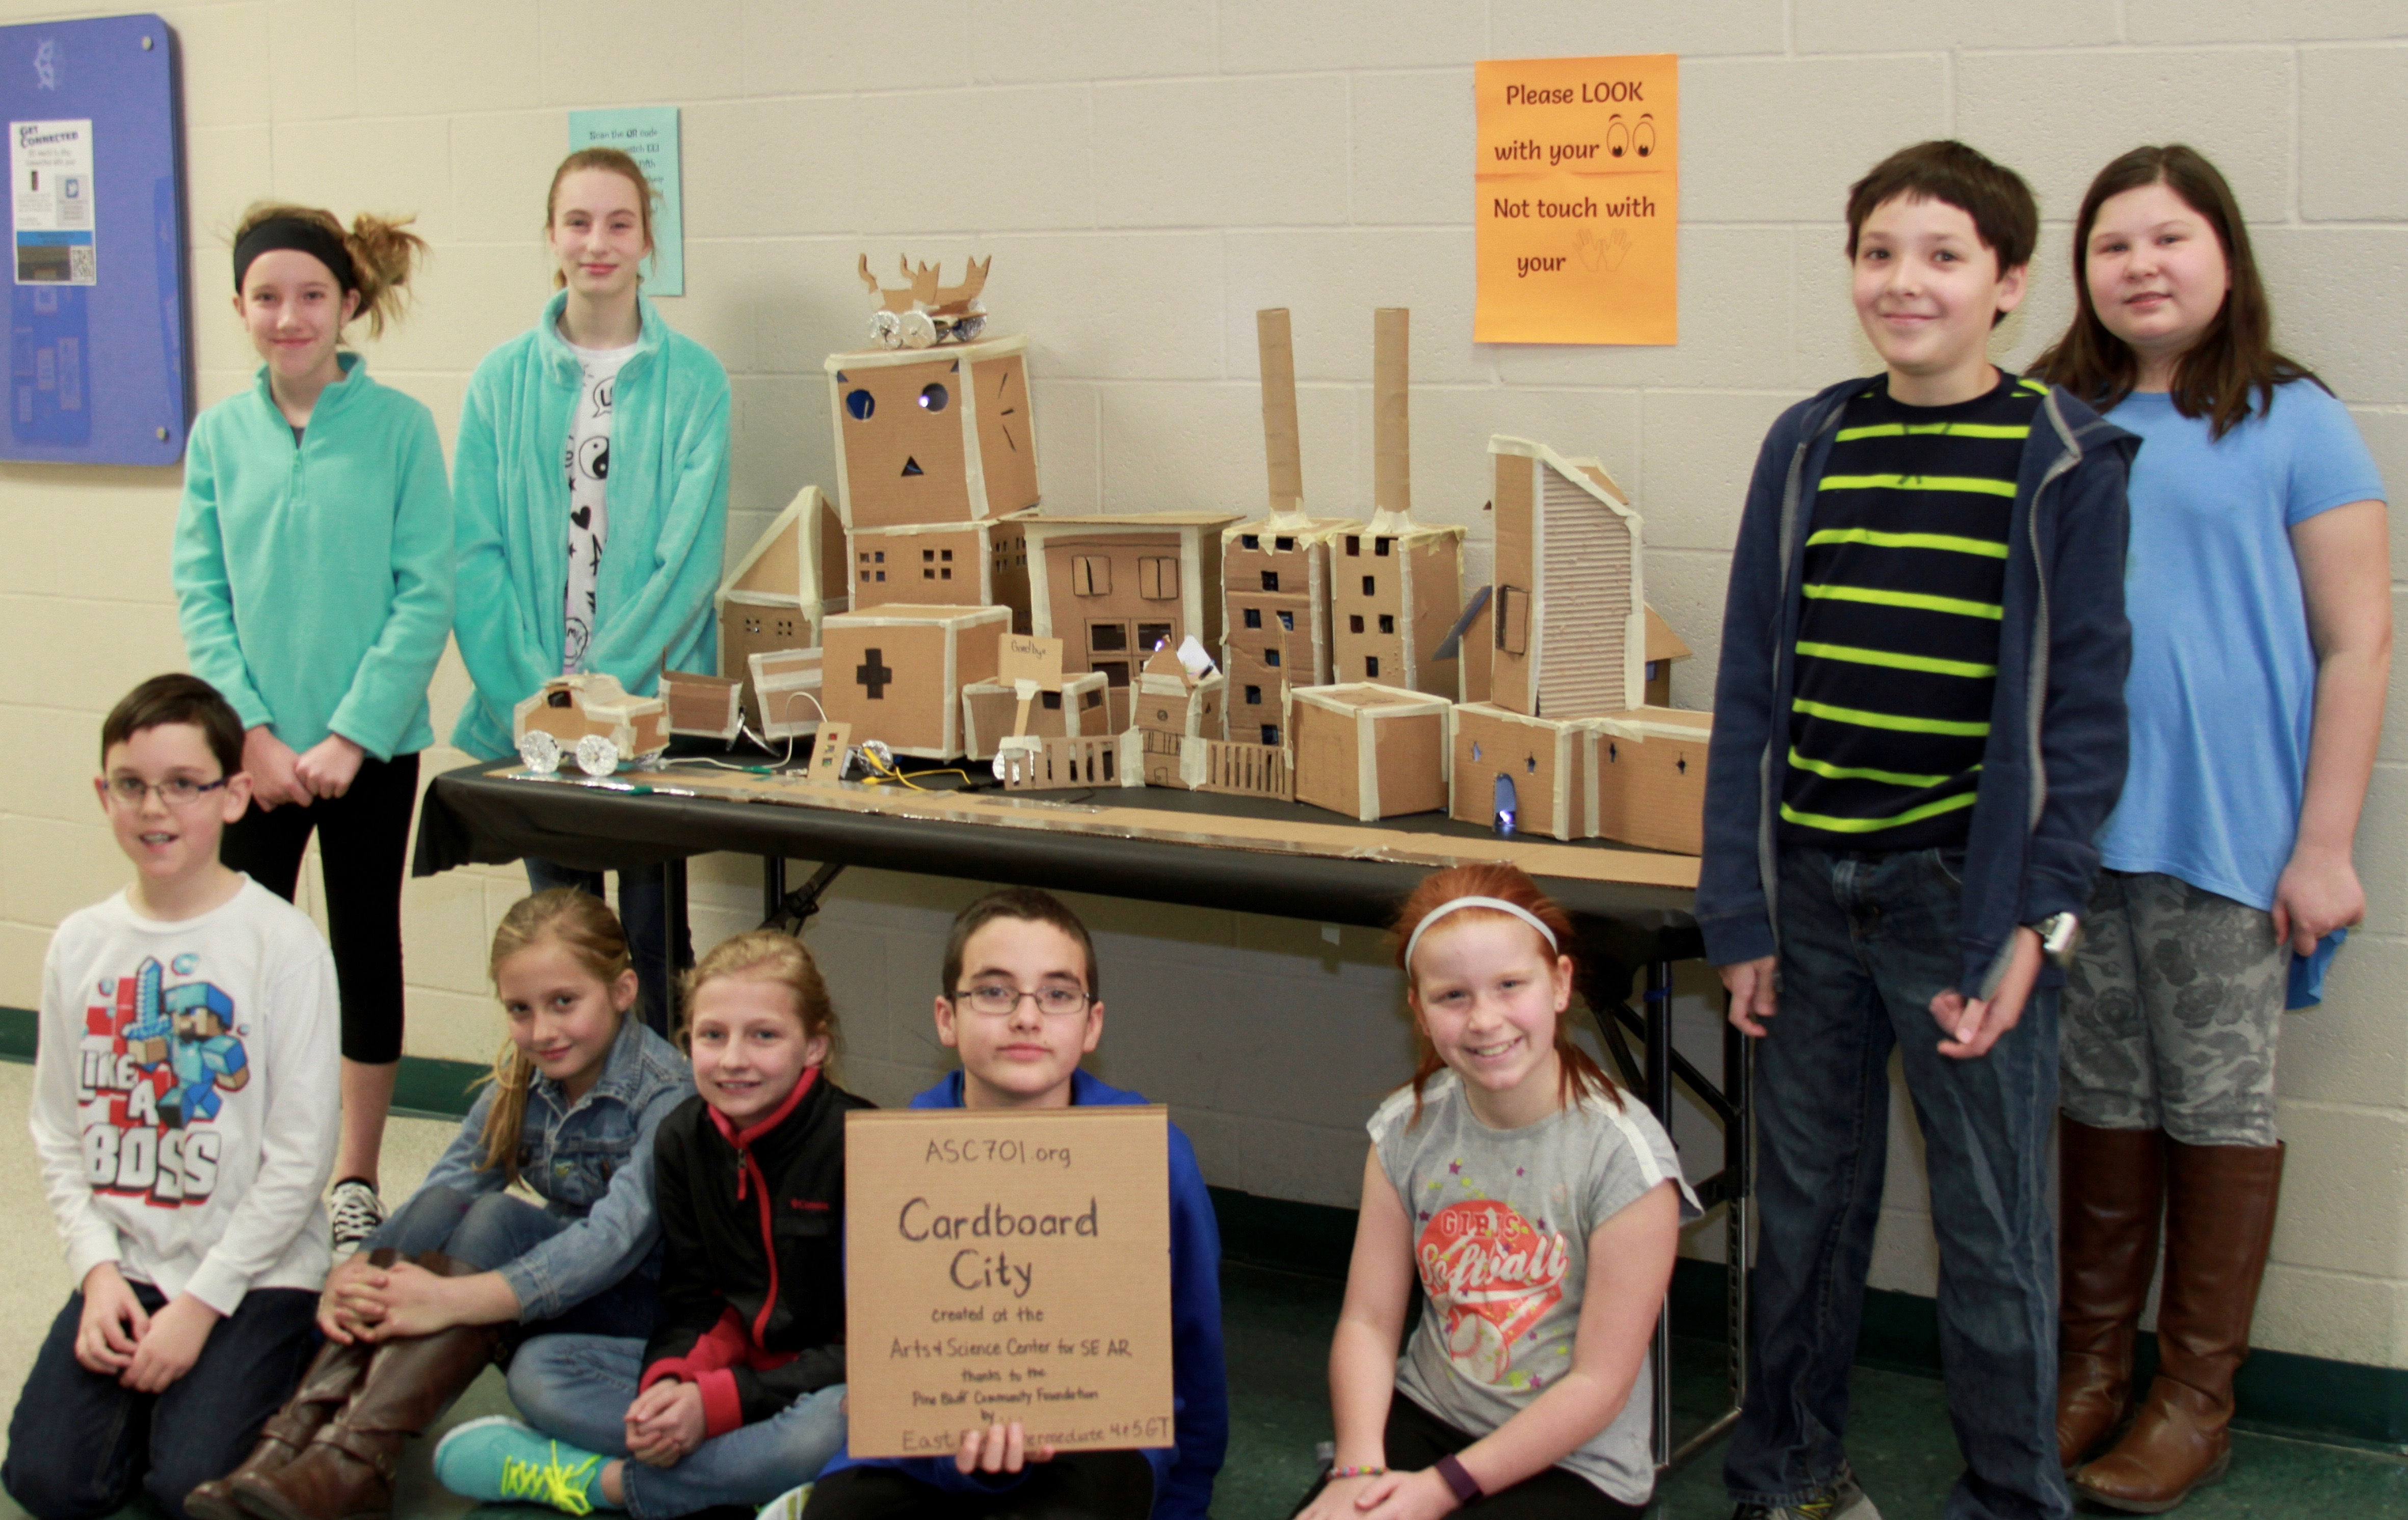 Students pose next to cardboard city